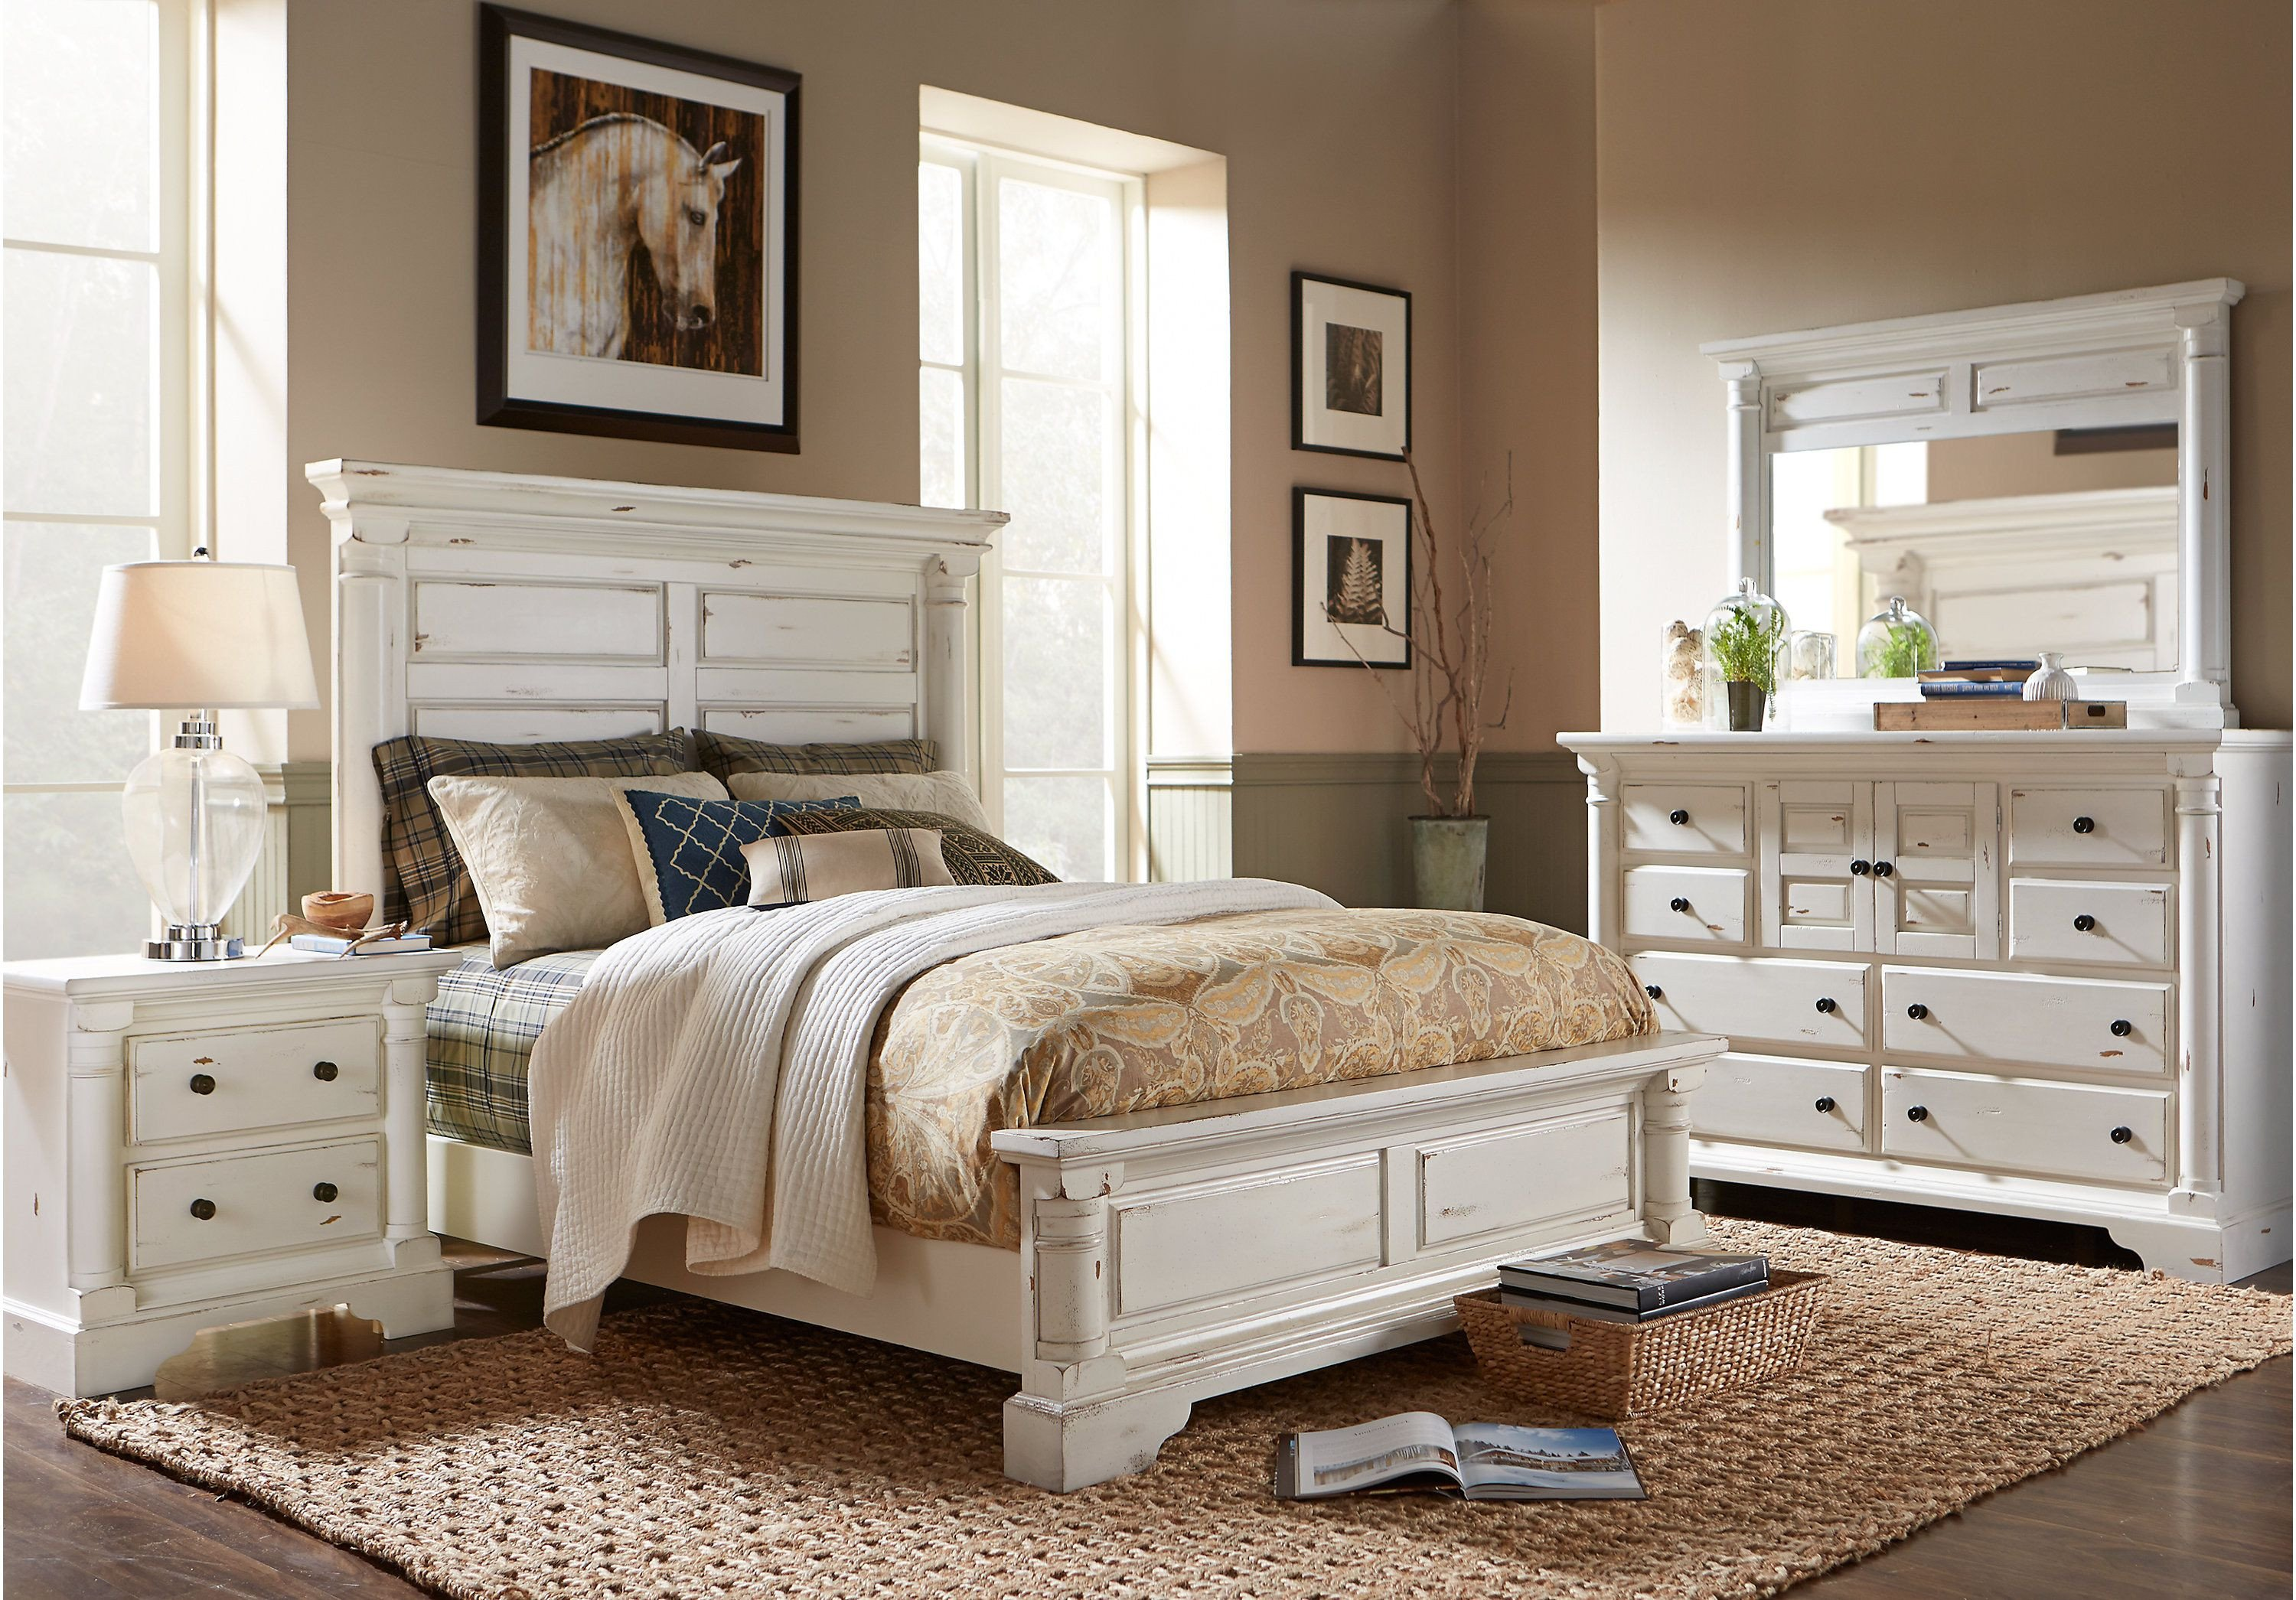 King Bedroom Set Ikea Lovely Claymore Park F White 8 Pc King Panel Bedroom